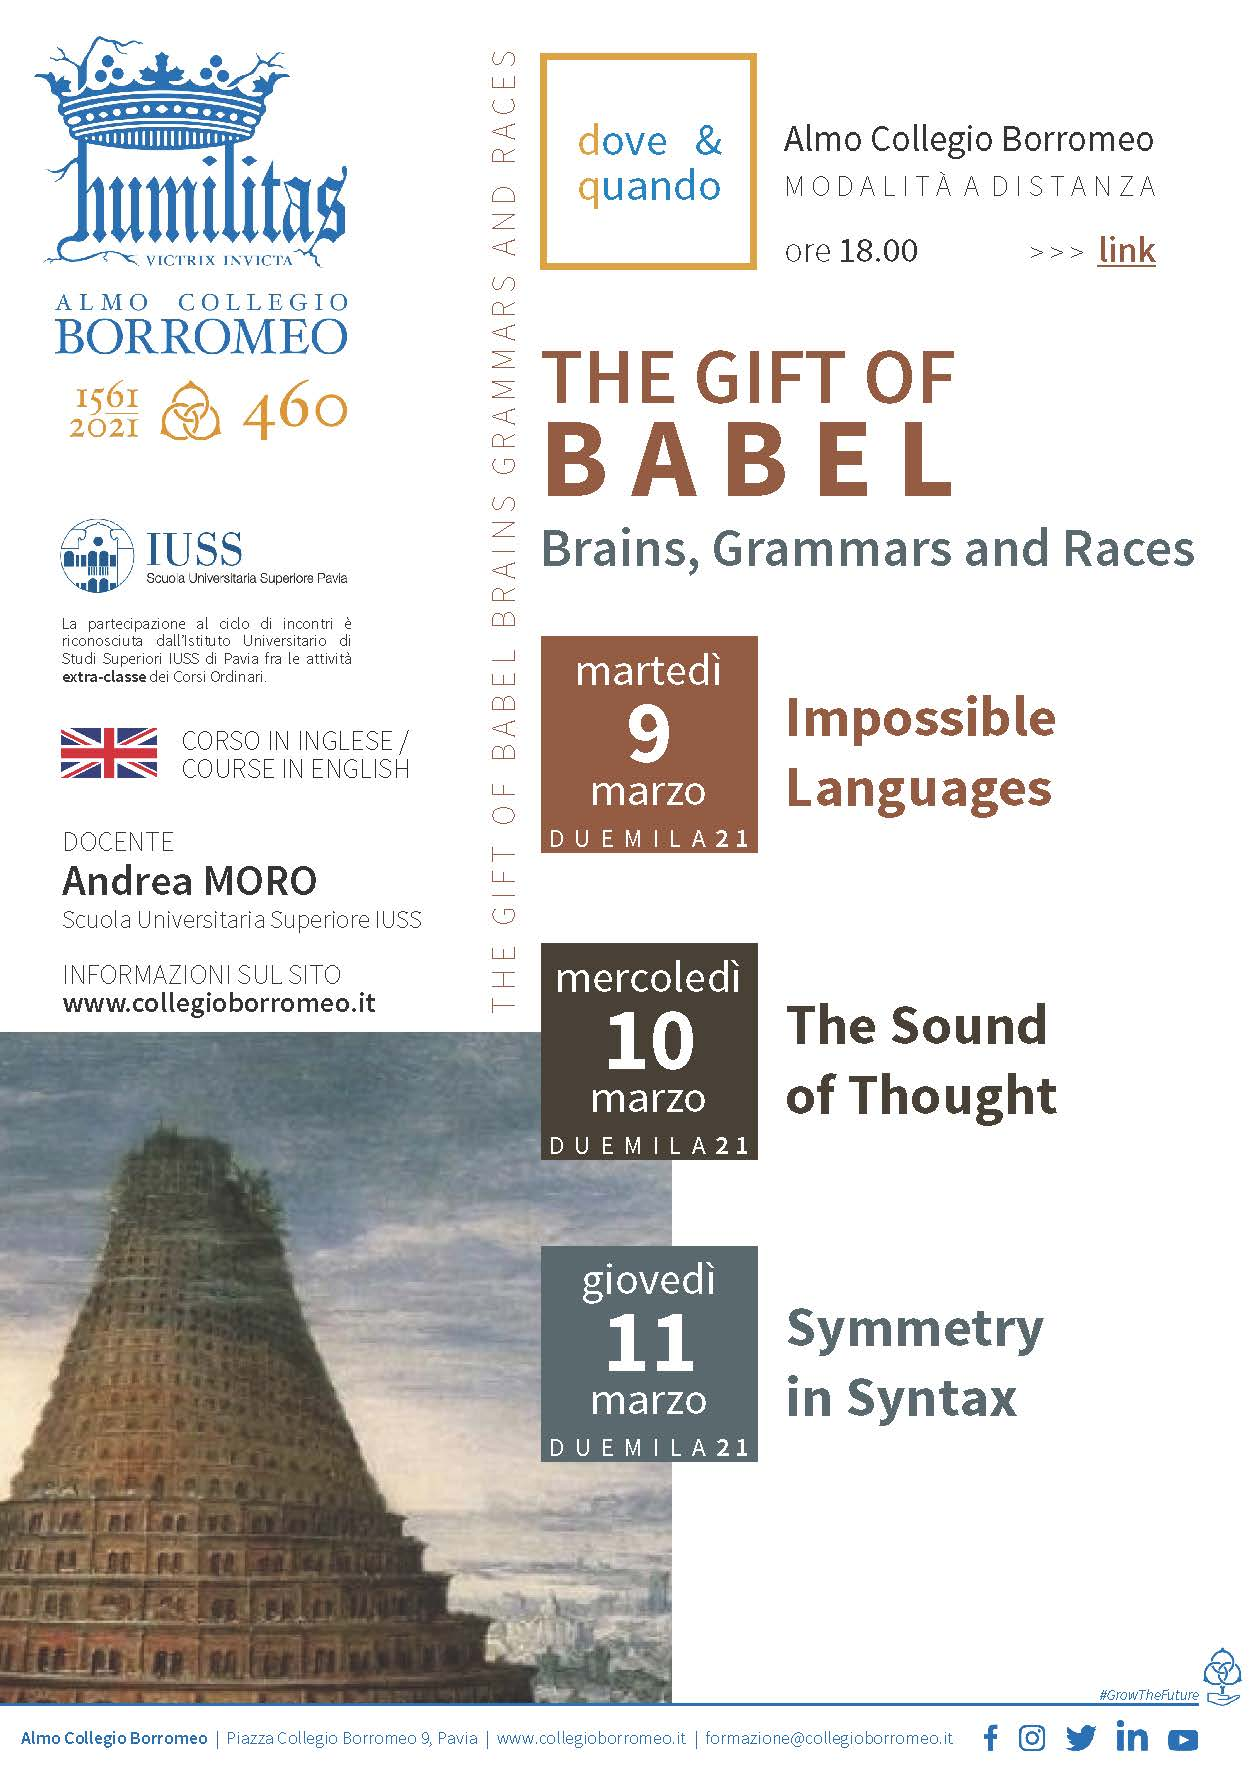 The gift of Babel 2021